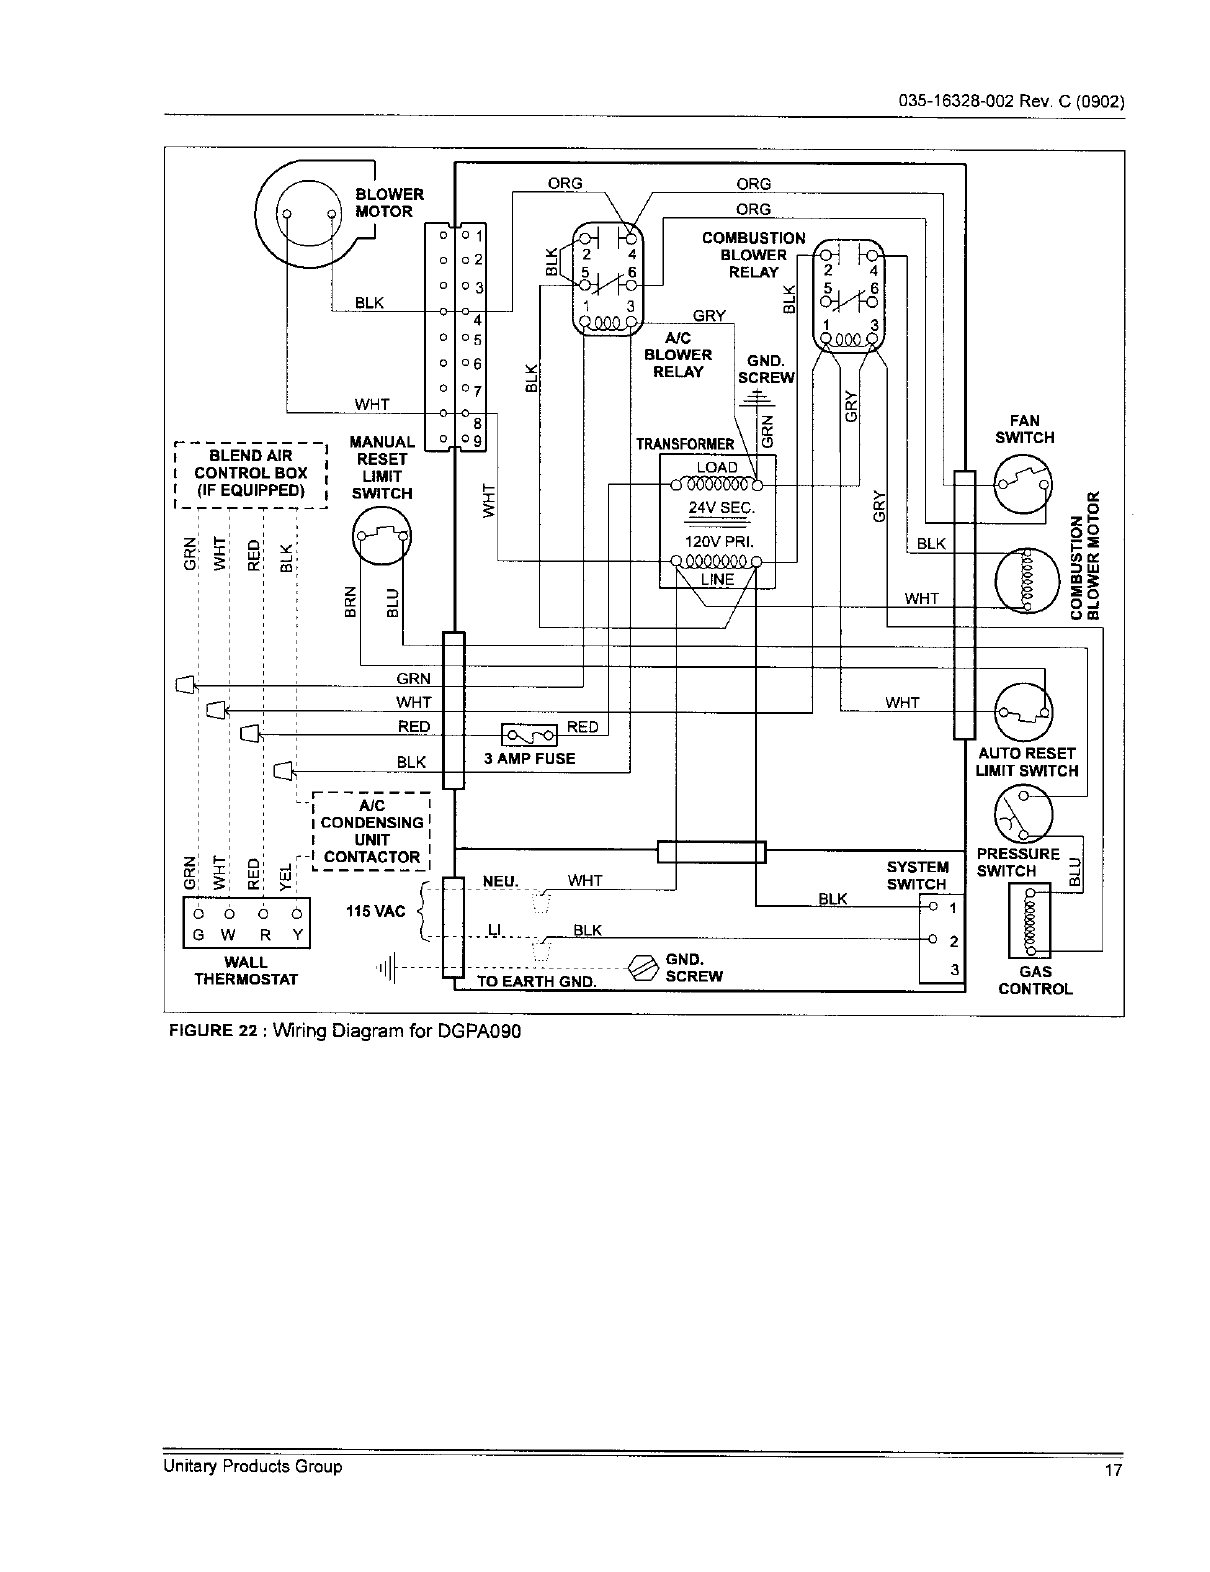 York Diamond 80 Parts Manual Image Of Furnace Fan Wiring Troubleshooting Good Owner Site